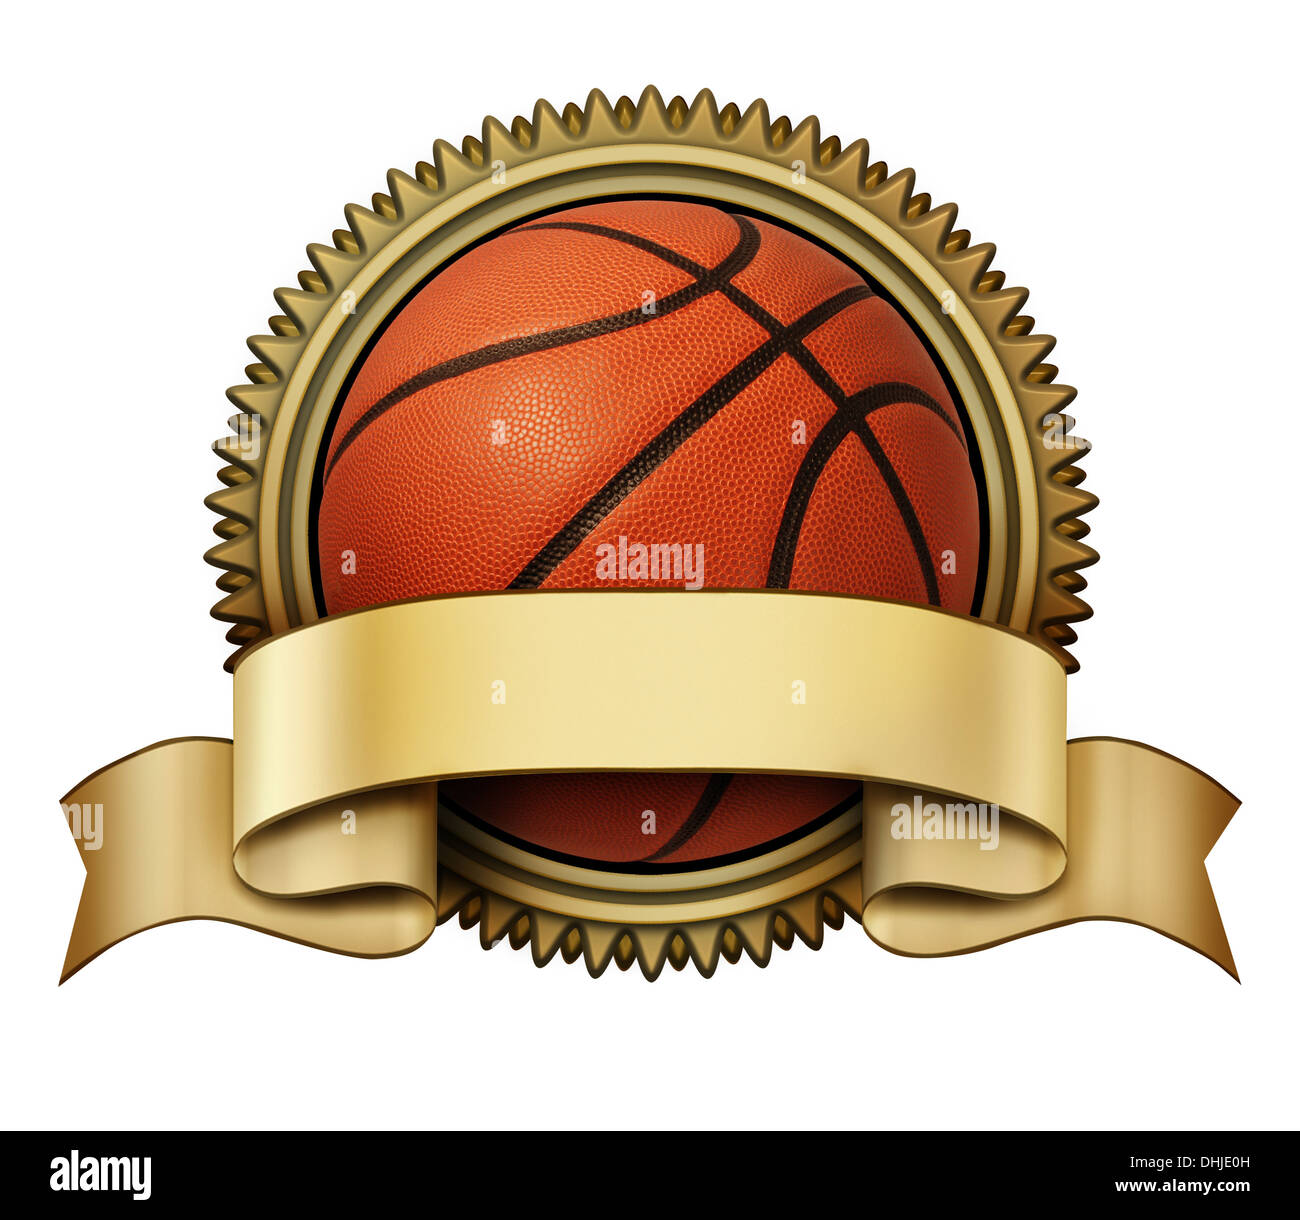 Basketball Award Crest On A Gold Medallion For Competition Stock Photo Alamy